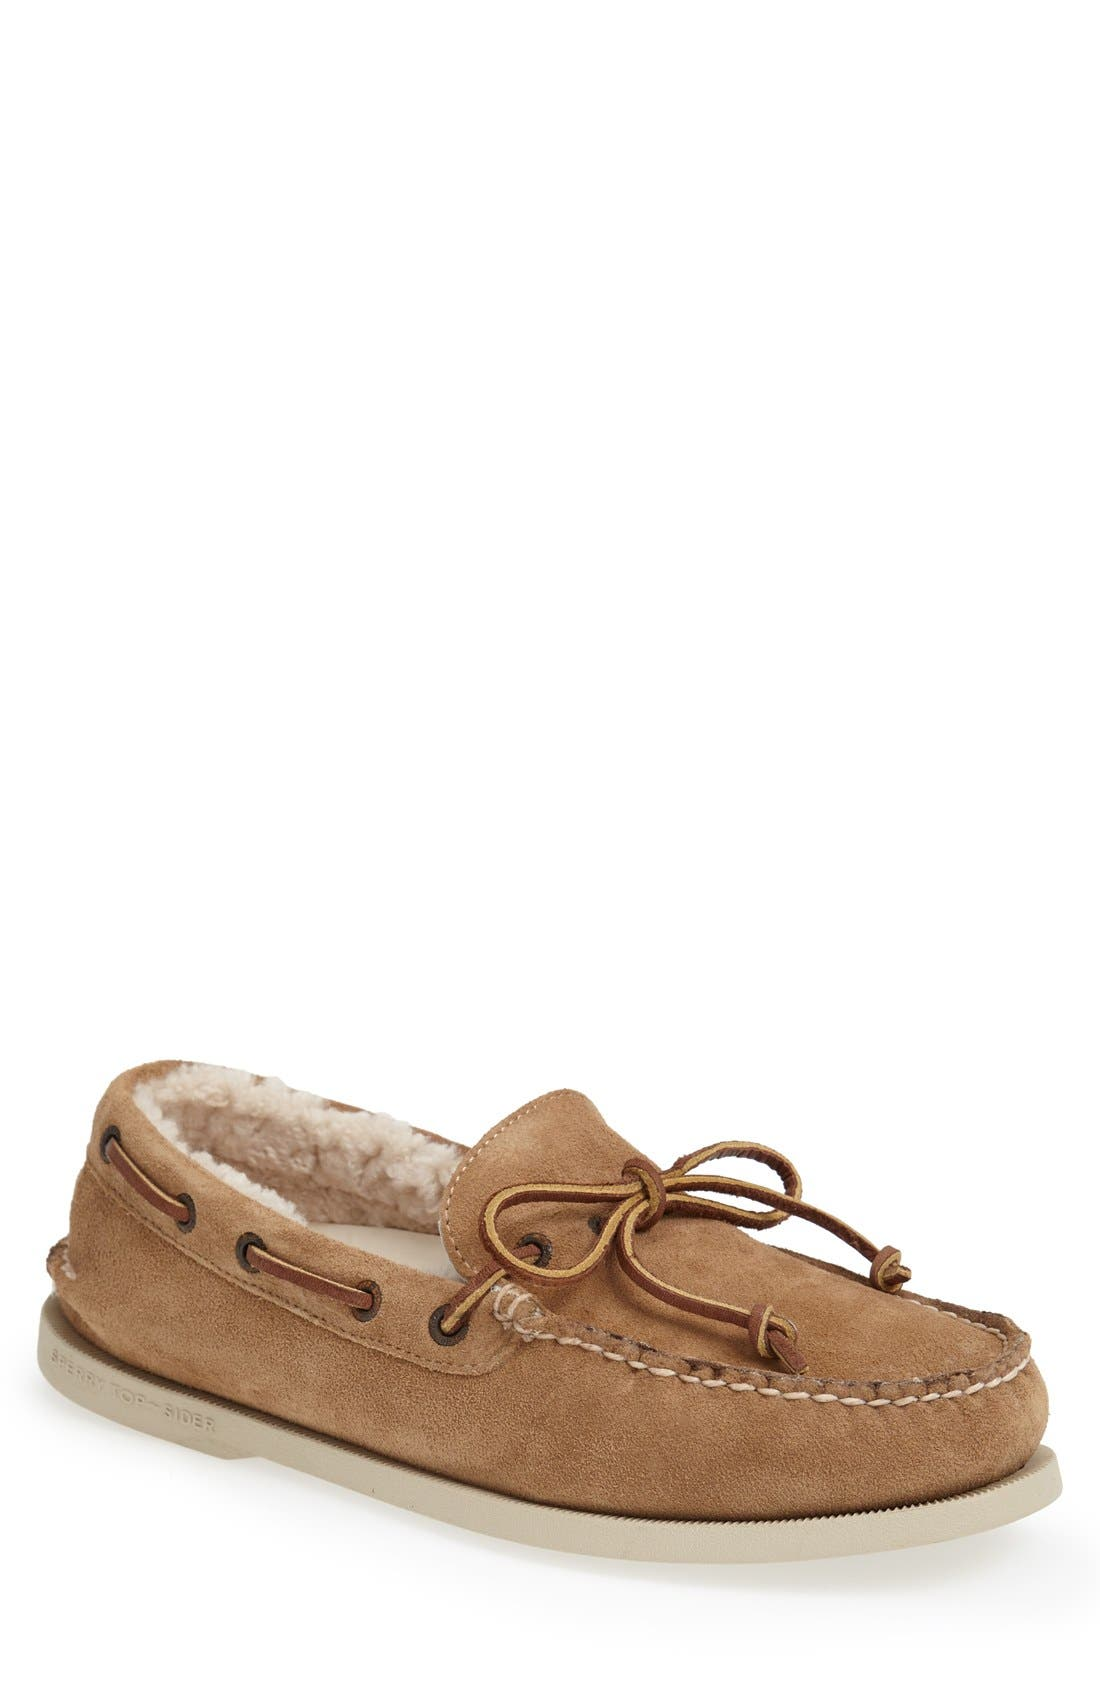 Top-Sider<sup>®</sup> 'Authentic Original' Winter Boat Shoe, Main, color, 260